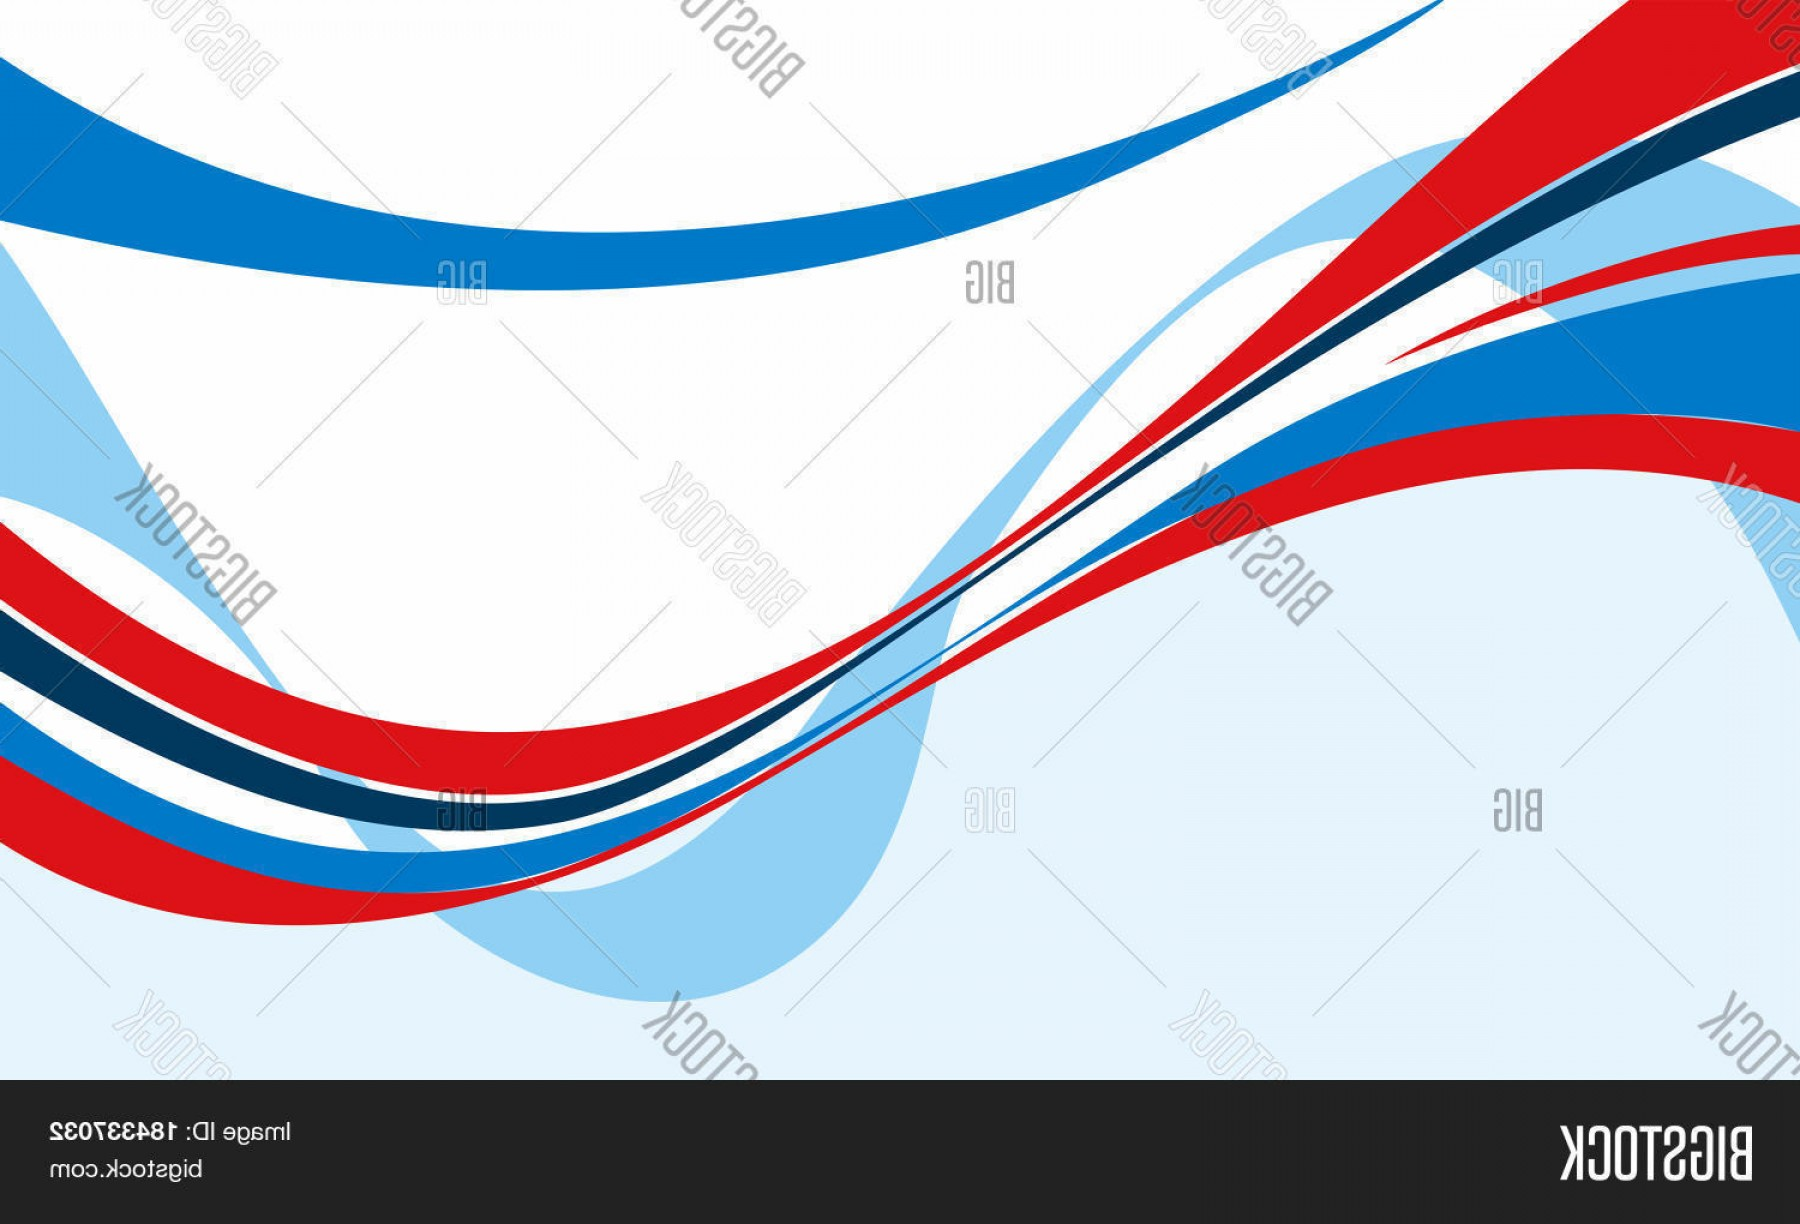 Wavy Line Illustrator Vector: Stock Vector Abstract Background With Redc Blue And White Wavy Lines Vector Illustration